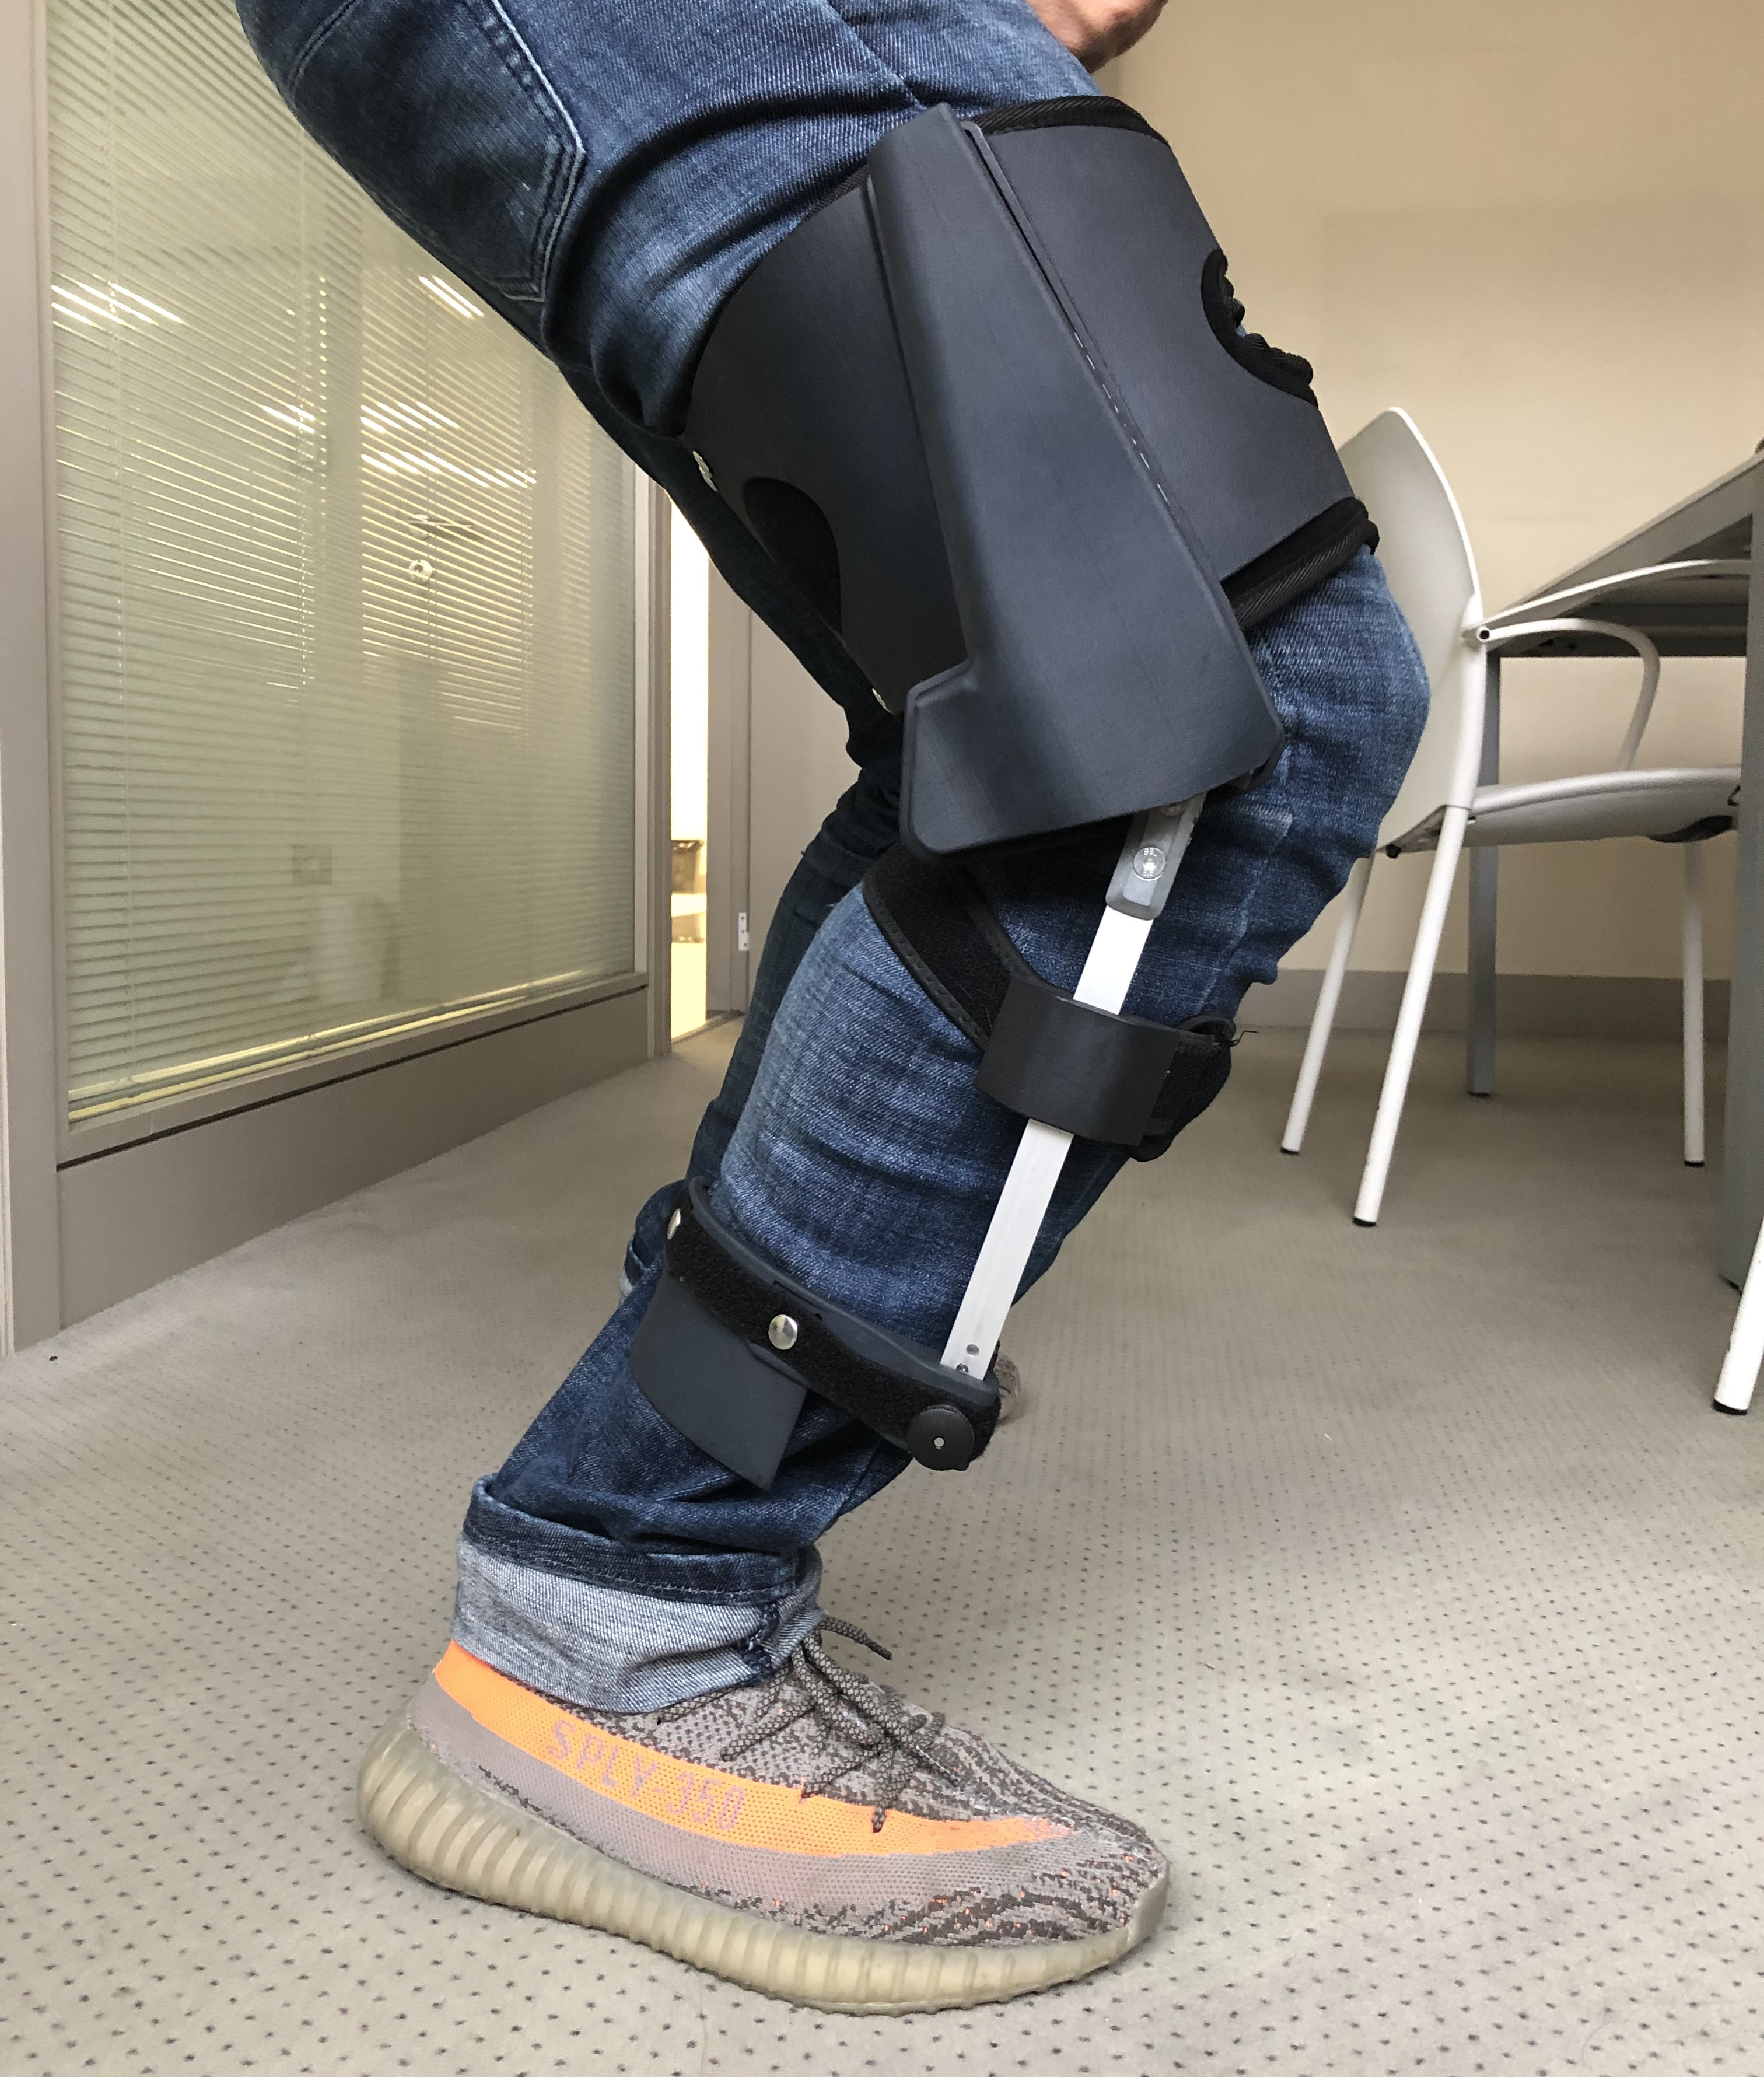 Xnowers (Levier) ski and snowboard exoskeleton